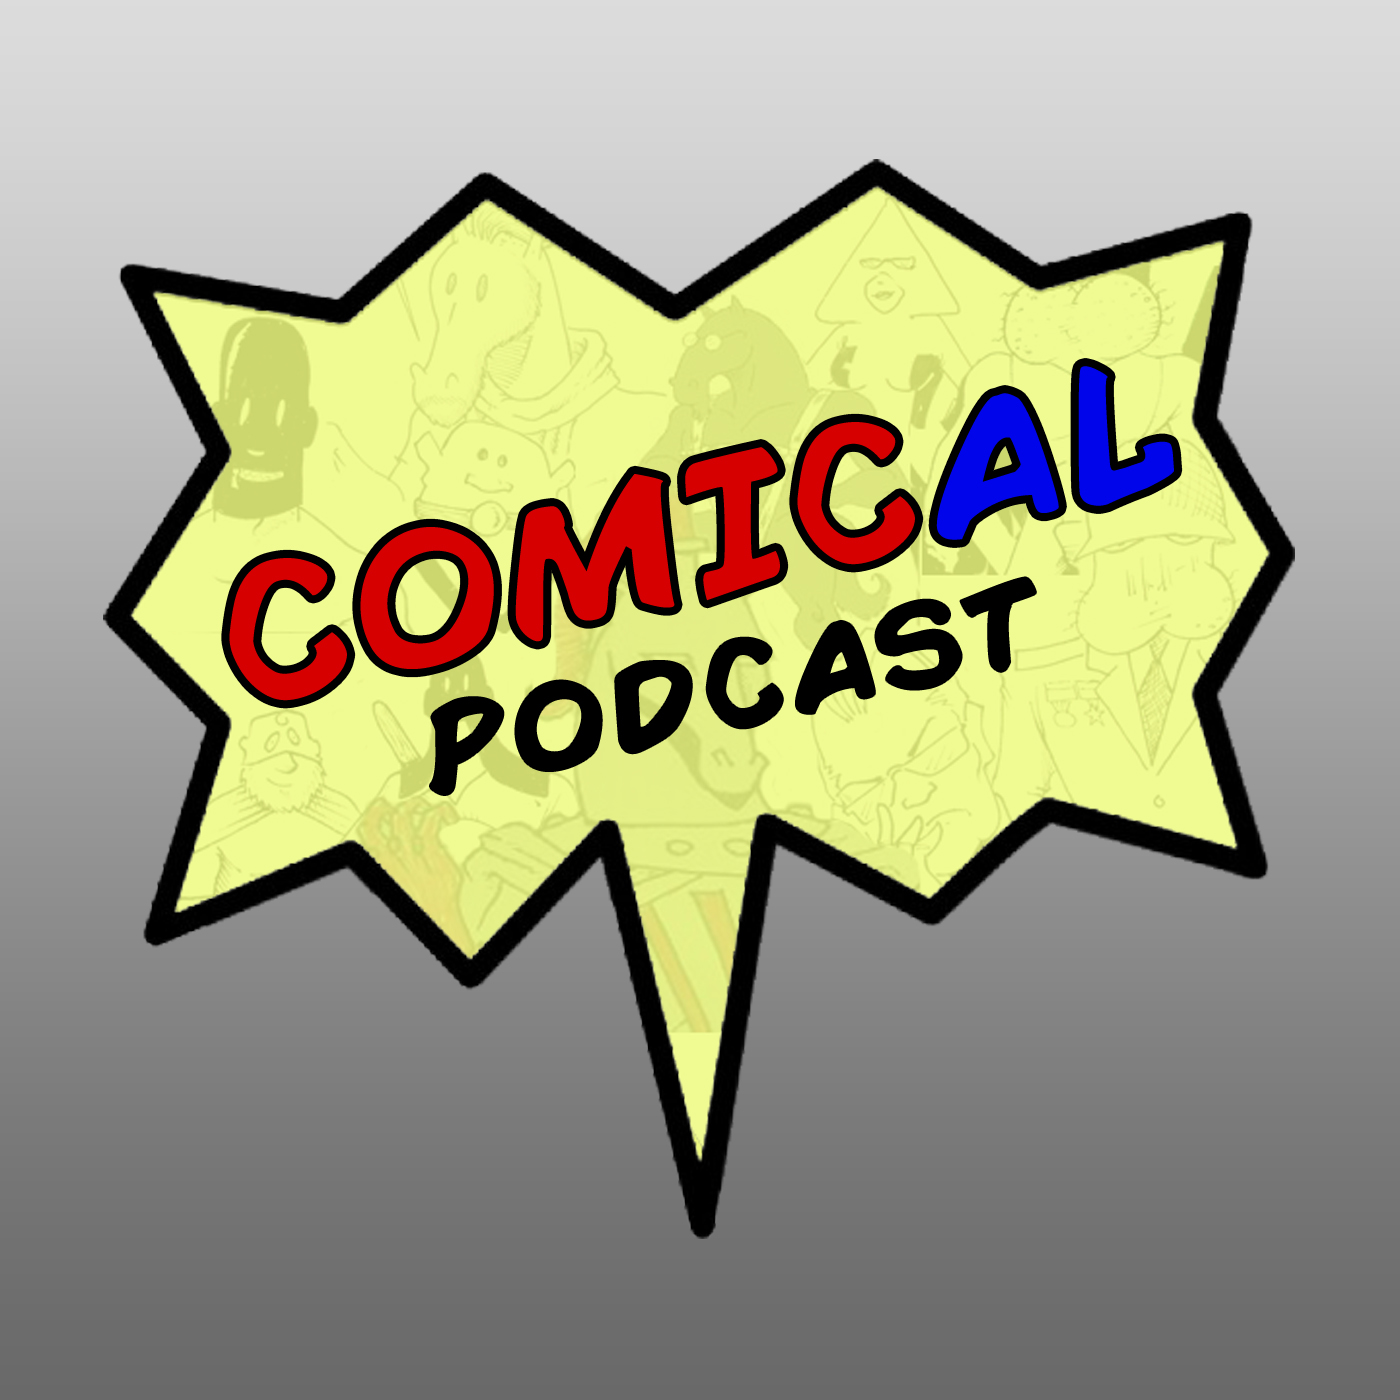 Comical Podcast - A Comedy Show all about Comic Books!